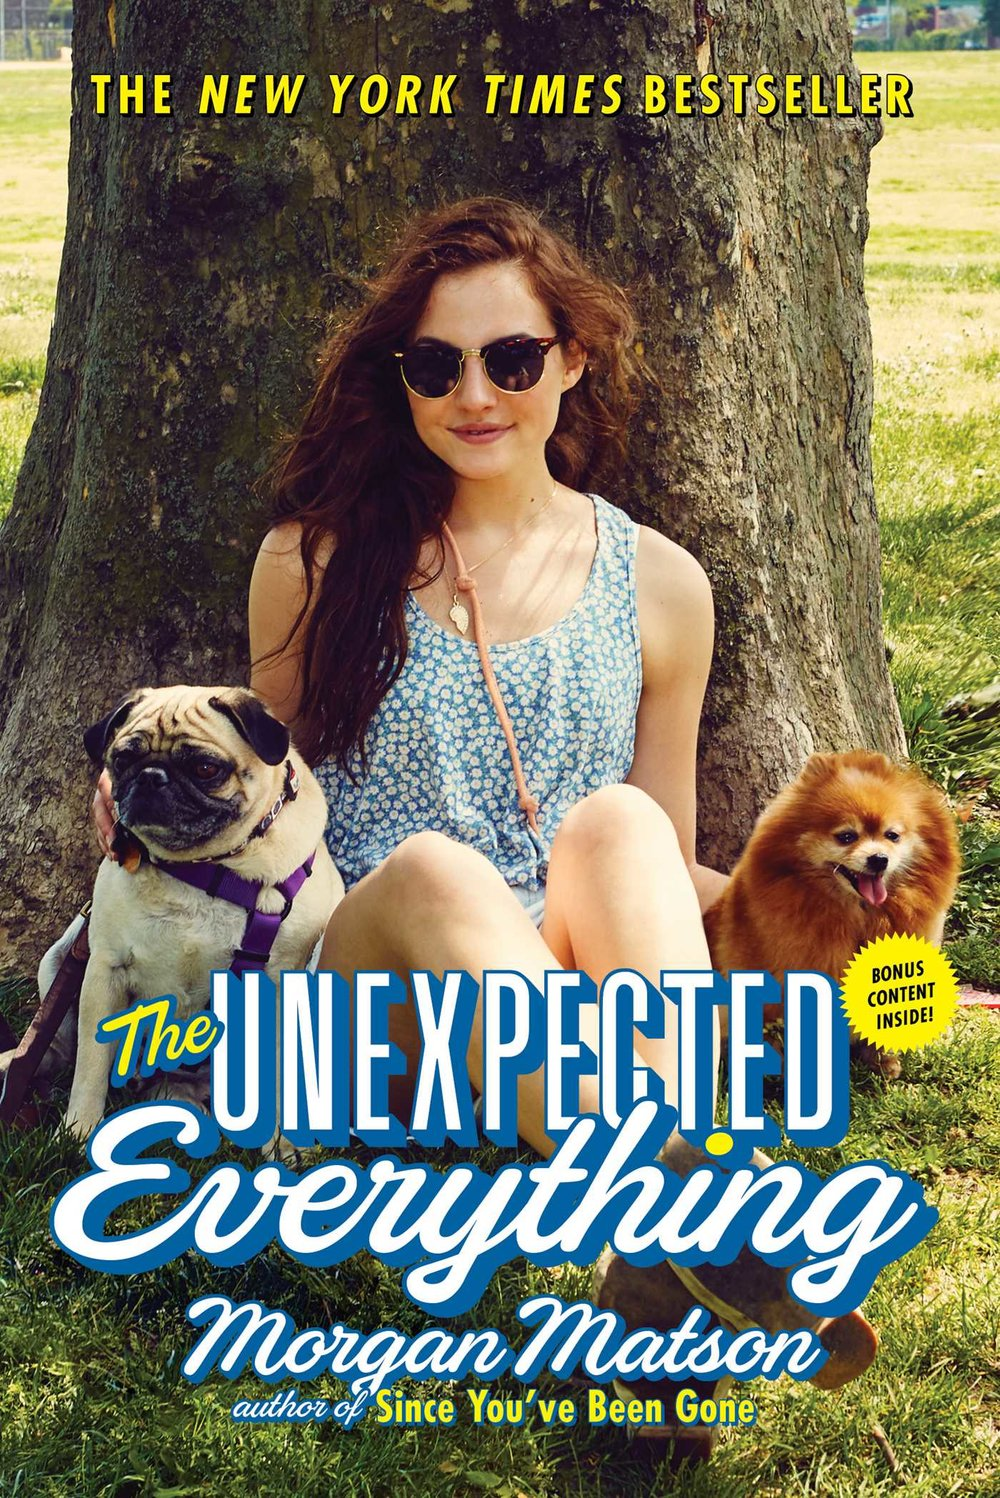 morgan-matson-unexpected-everything.jpg